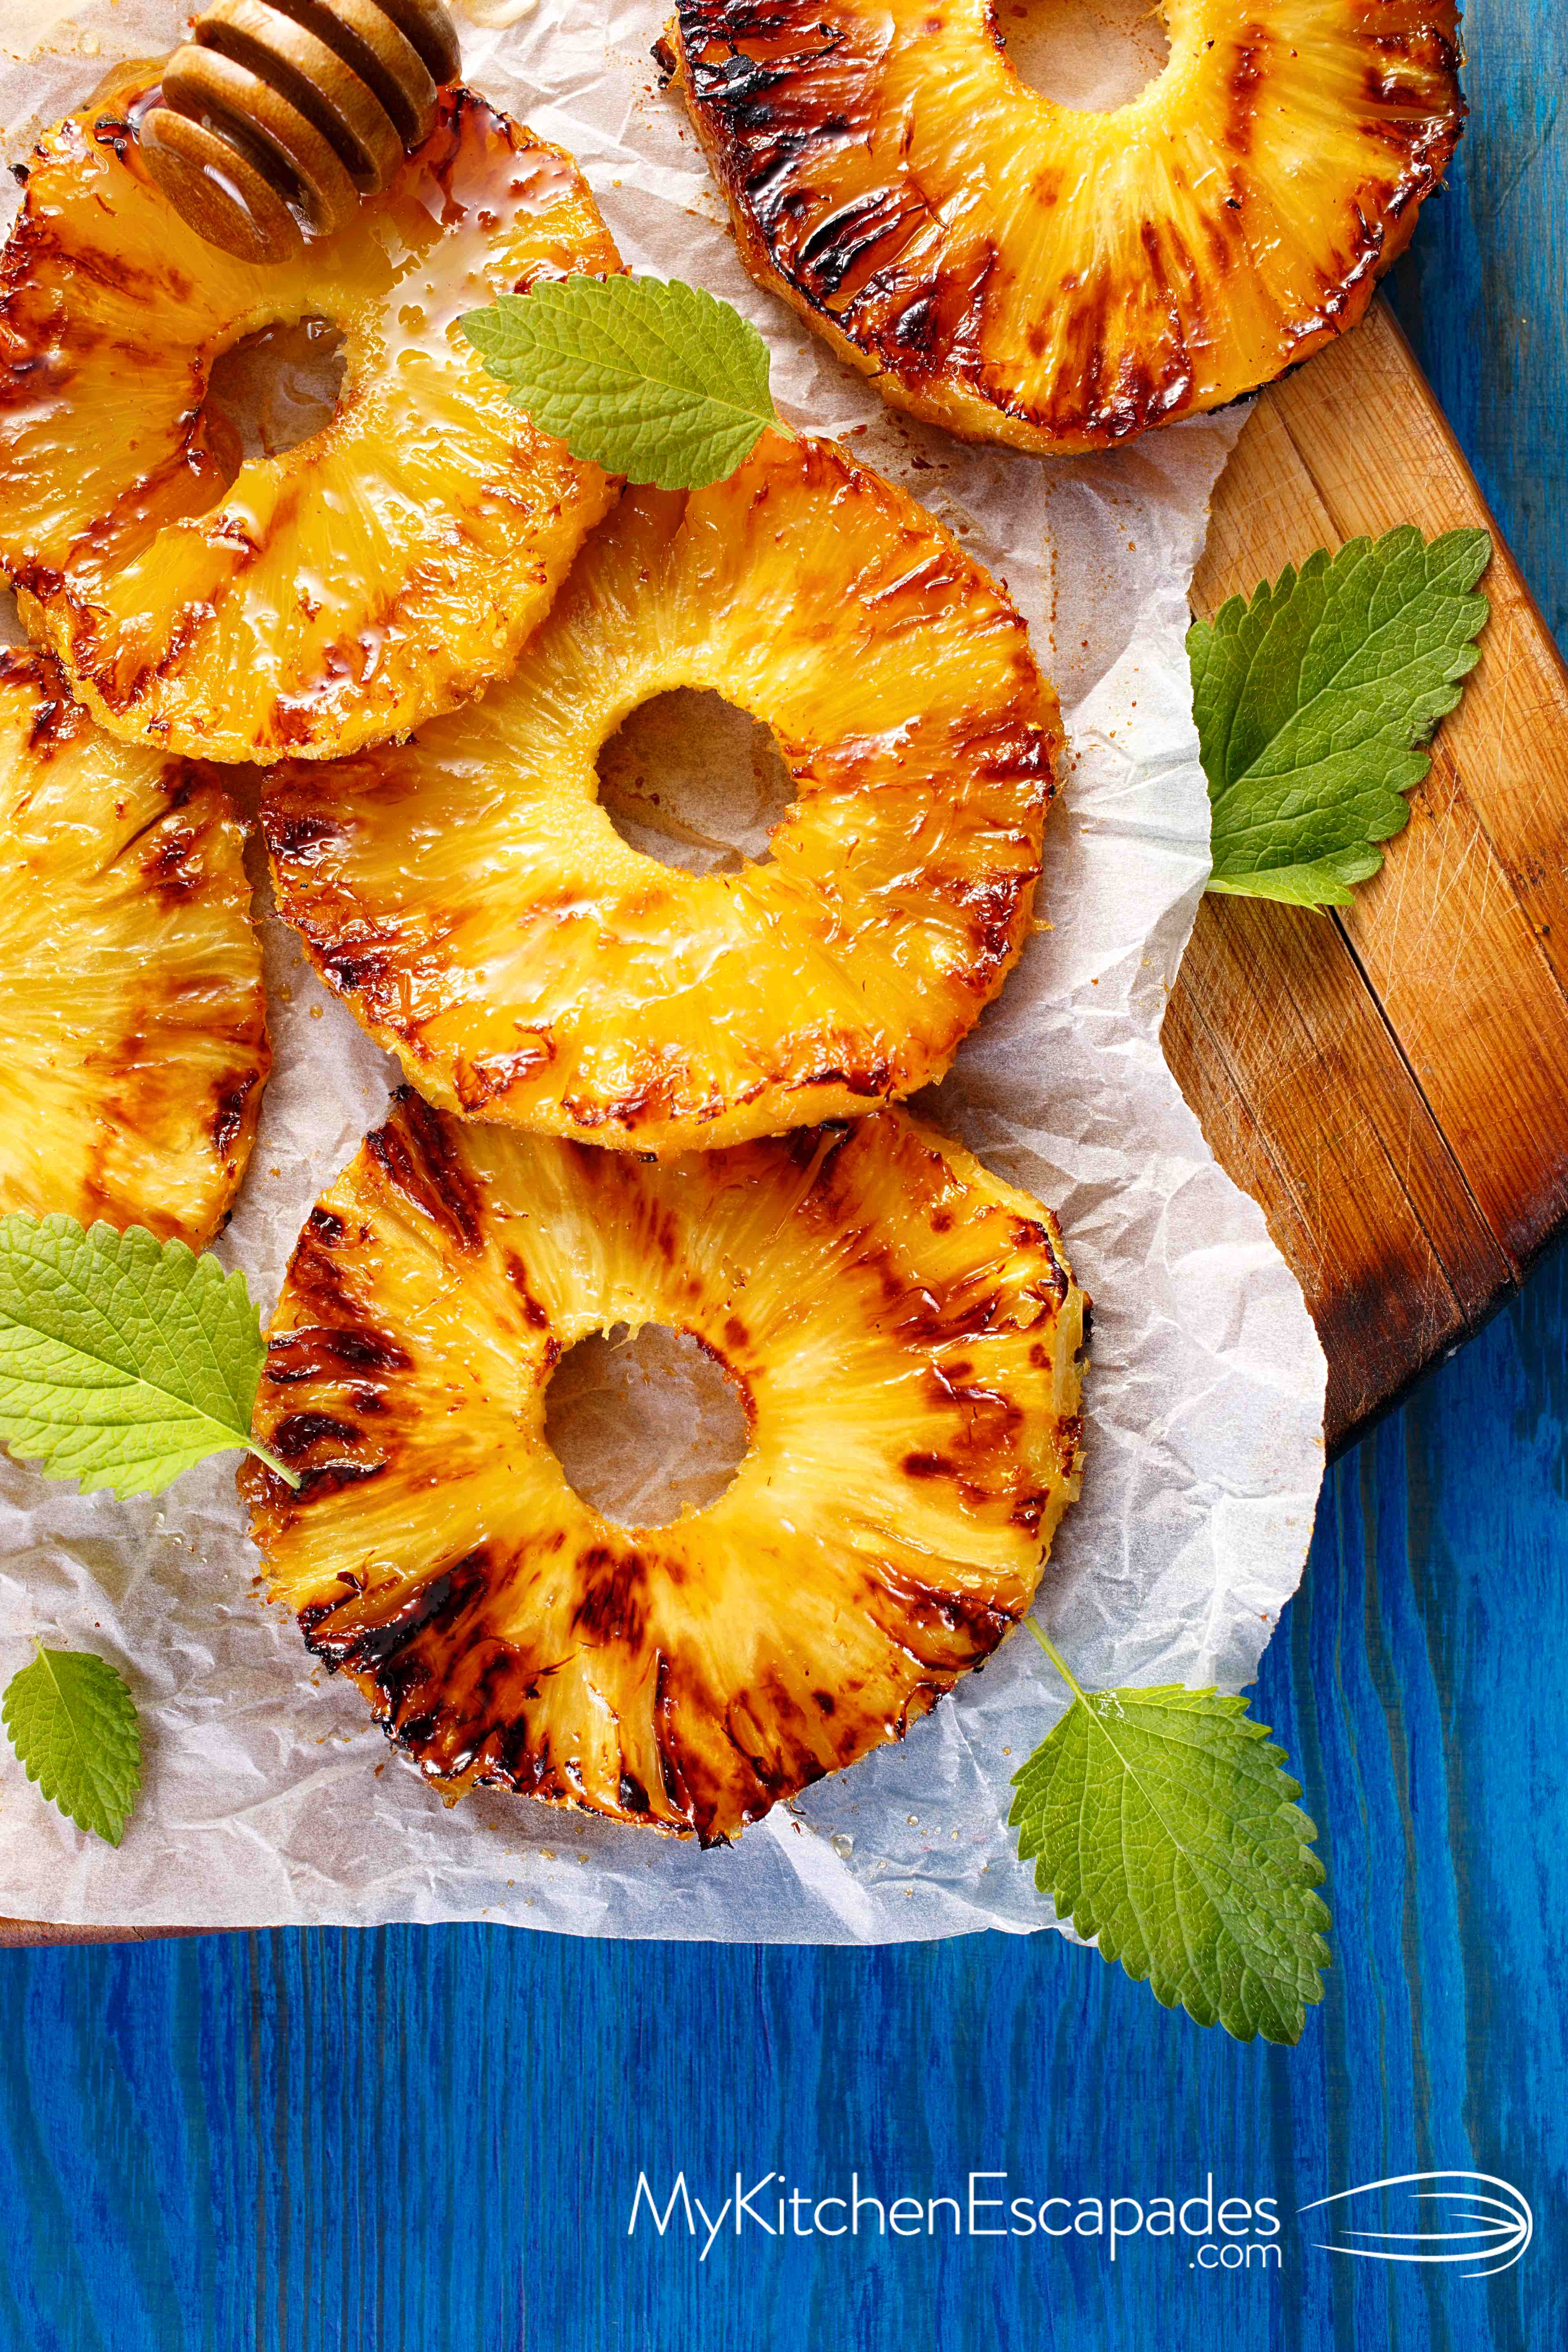 Grilled Pineapple with Honey Drizzle